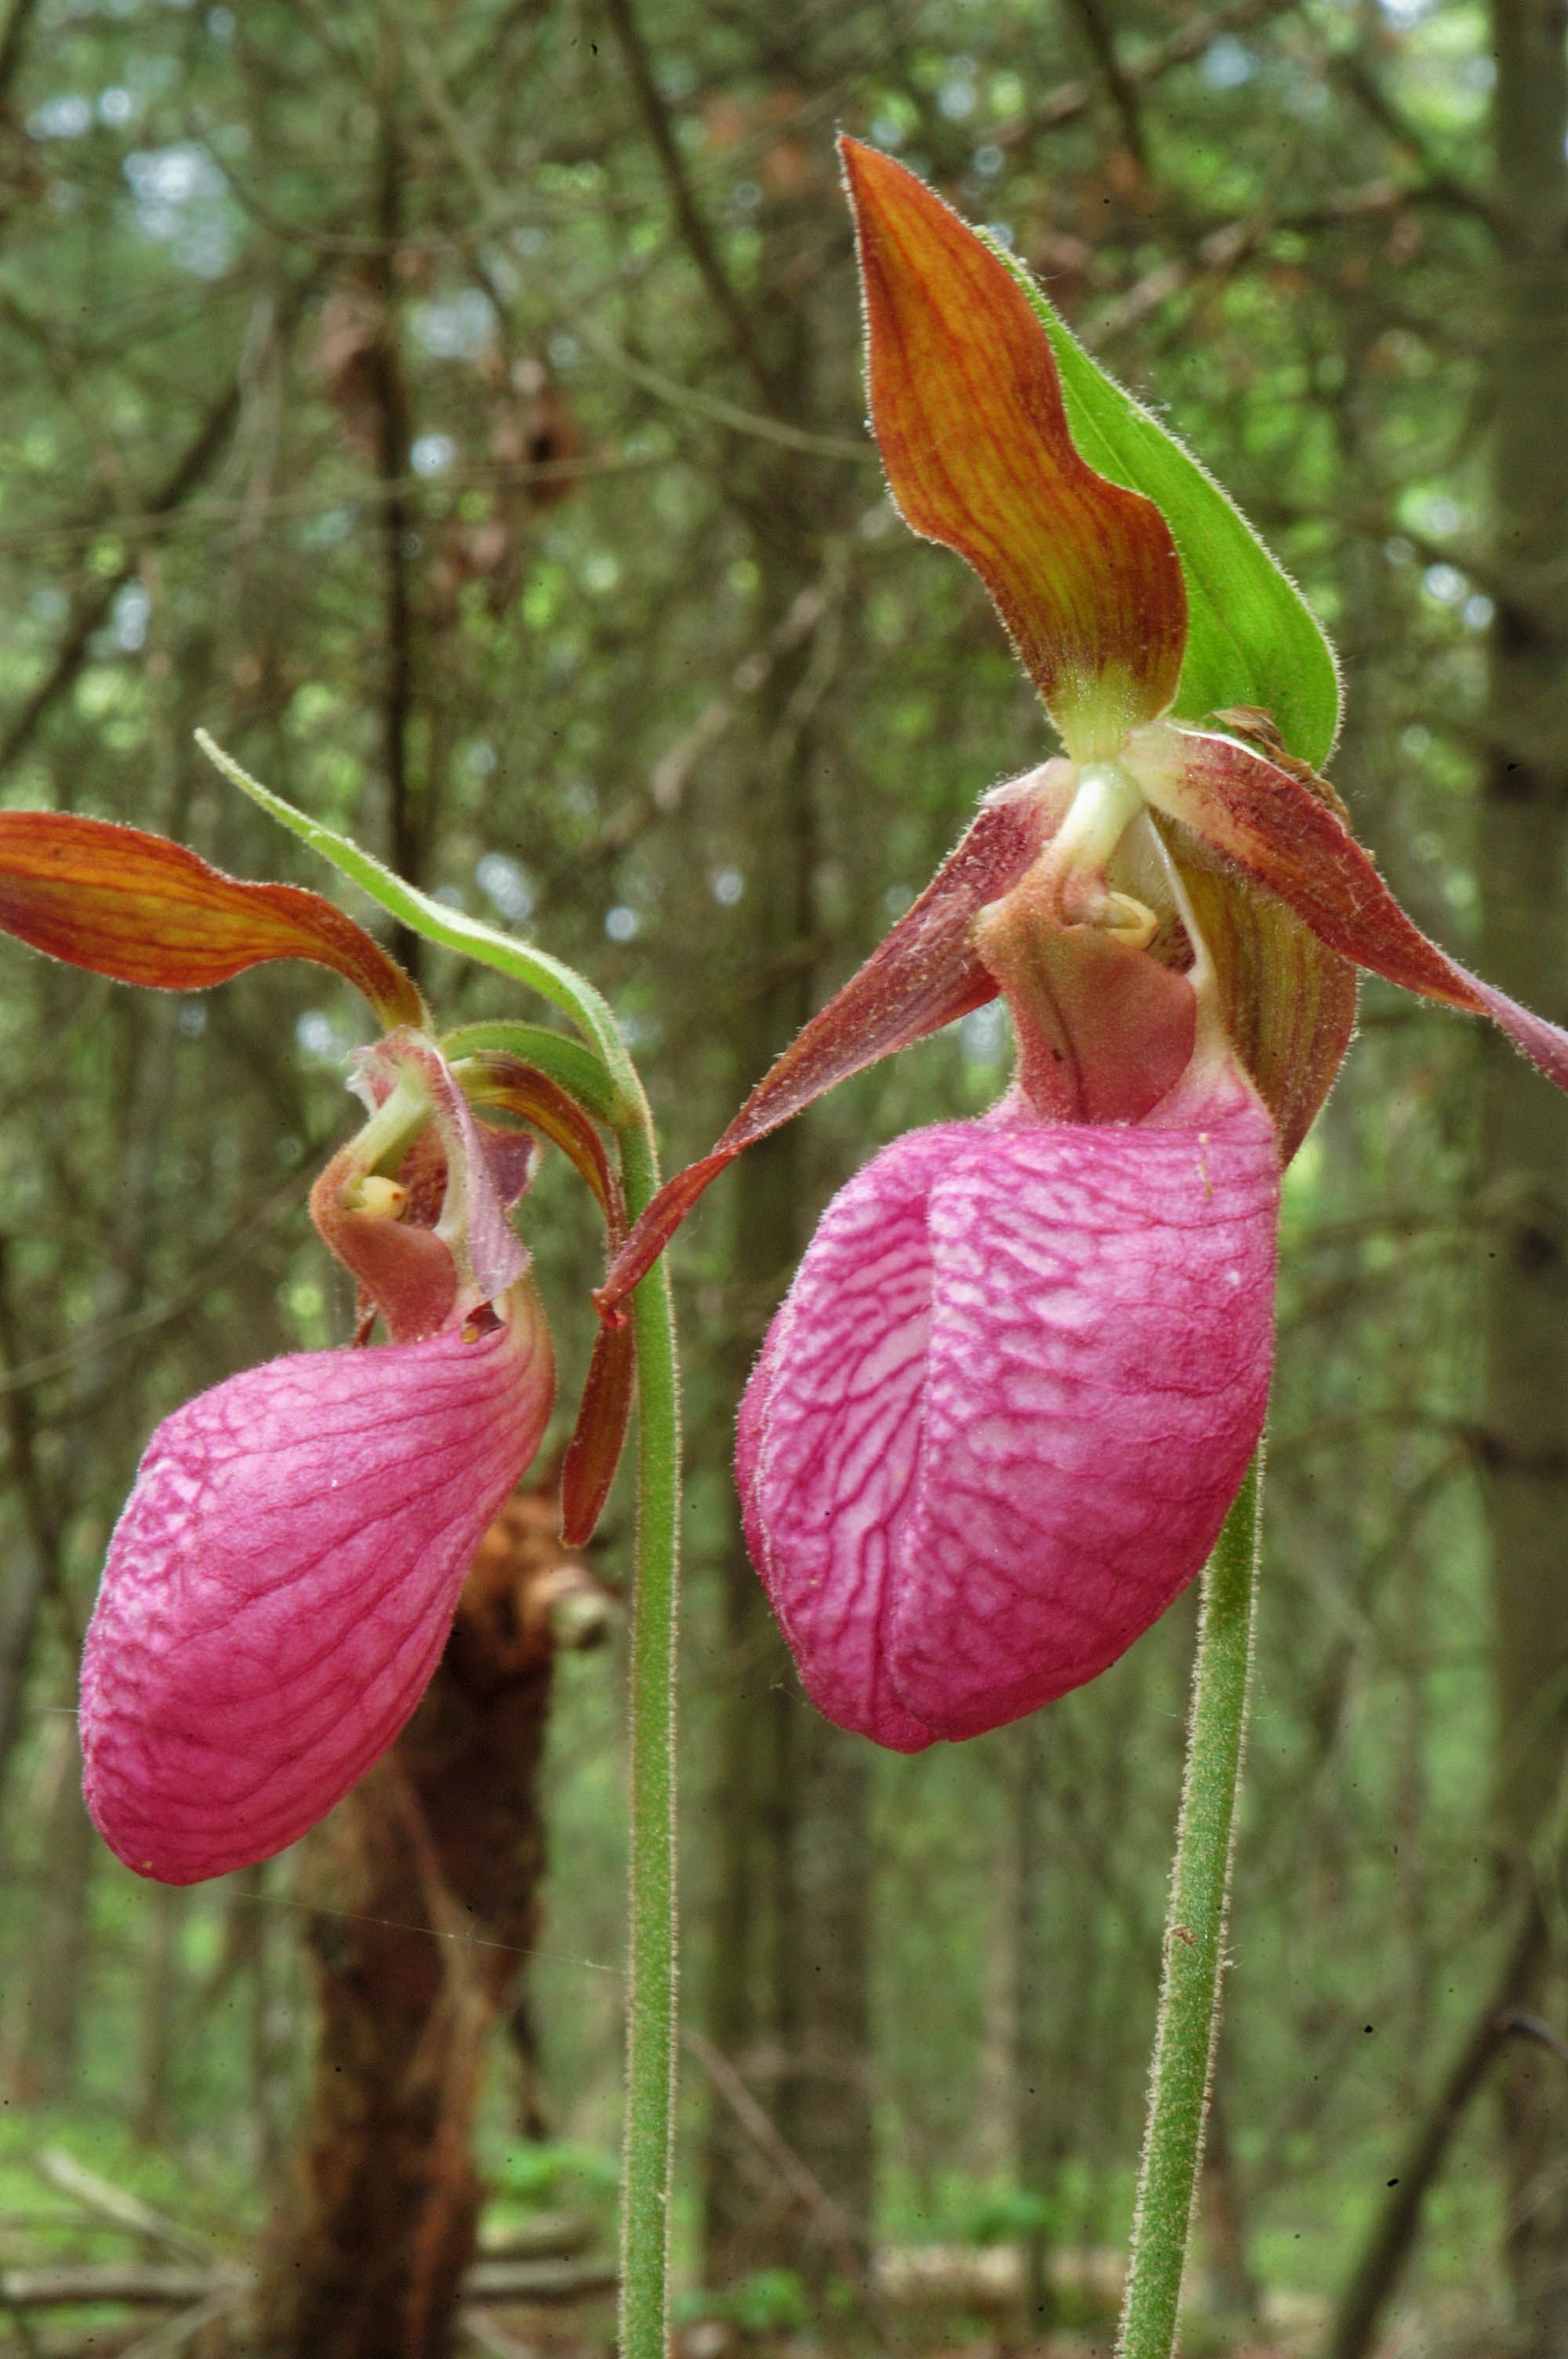 More Lady Slipper Flower Ink Spiration Lady Slipper Flower Pink Lady Slipper Lady Slipper Orchid